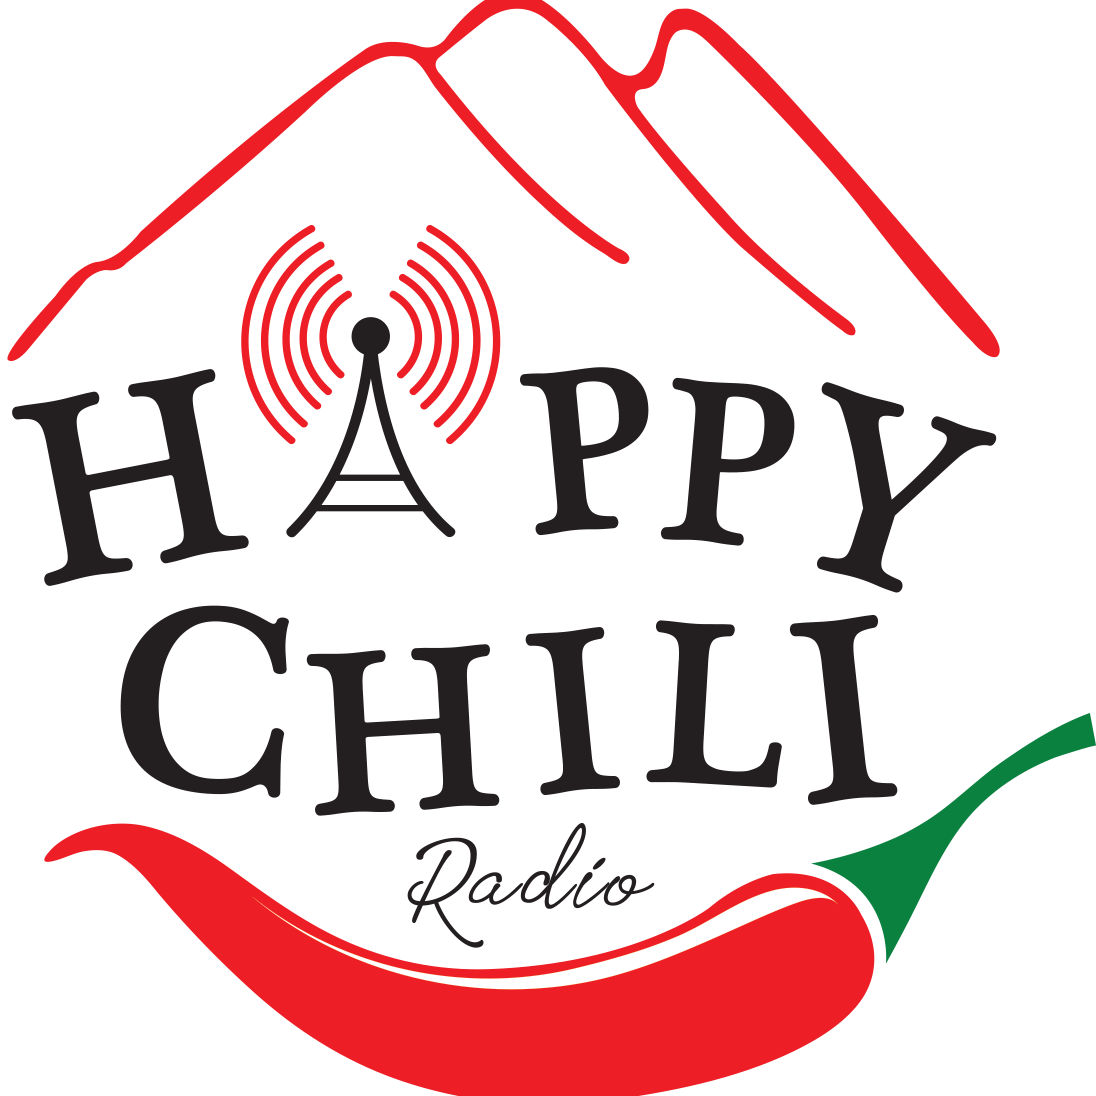 Happy Chili Radio